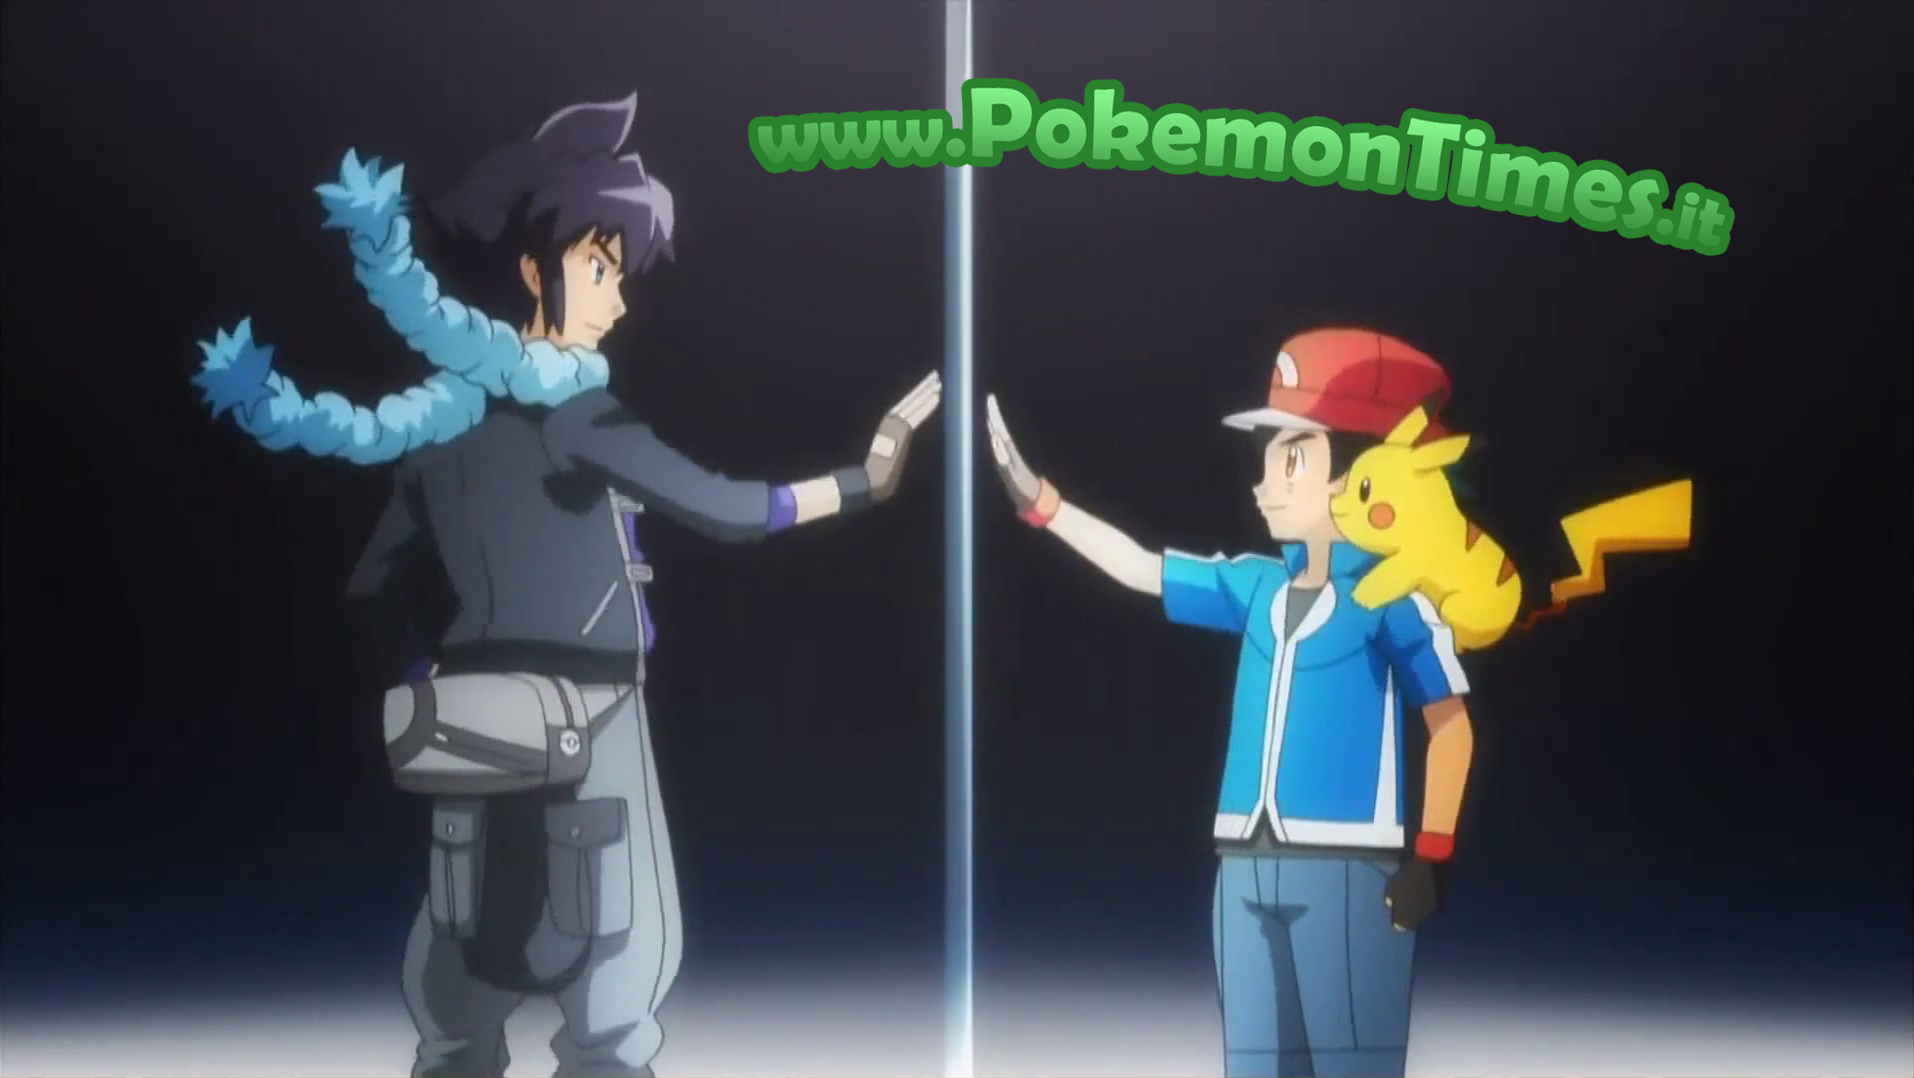 ash_alan_nuova_versione_getta_banban_xy_pokemontimes-it